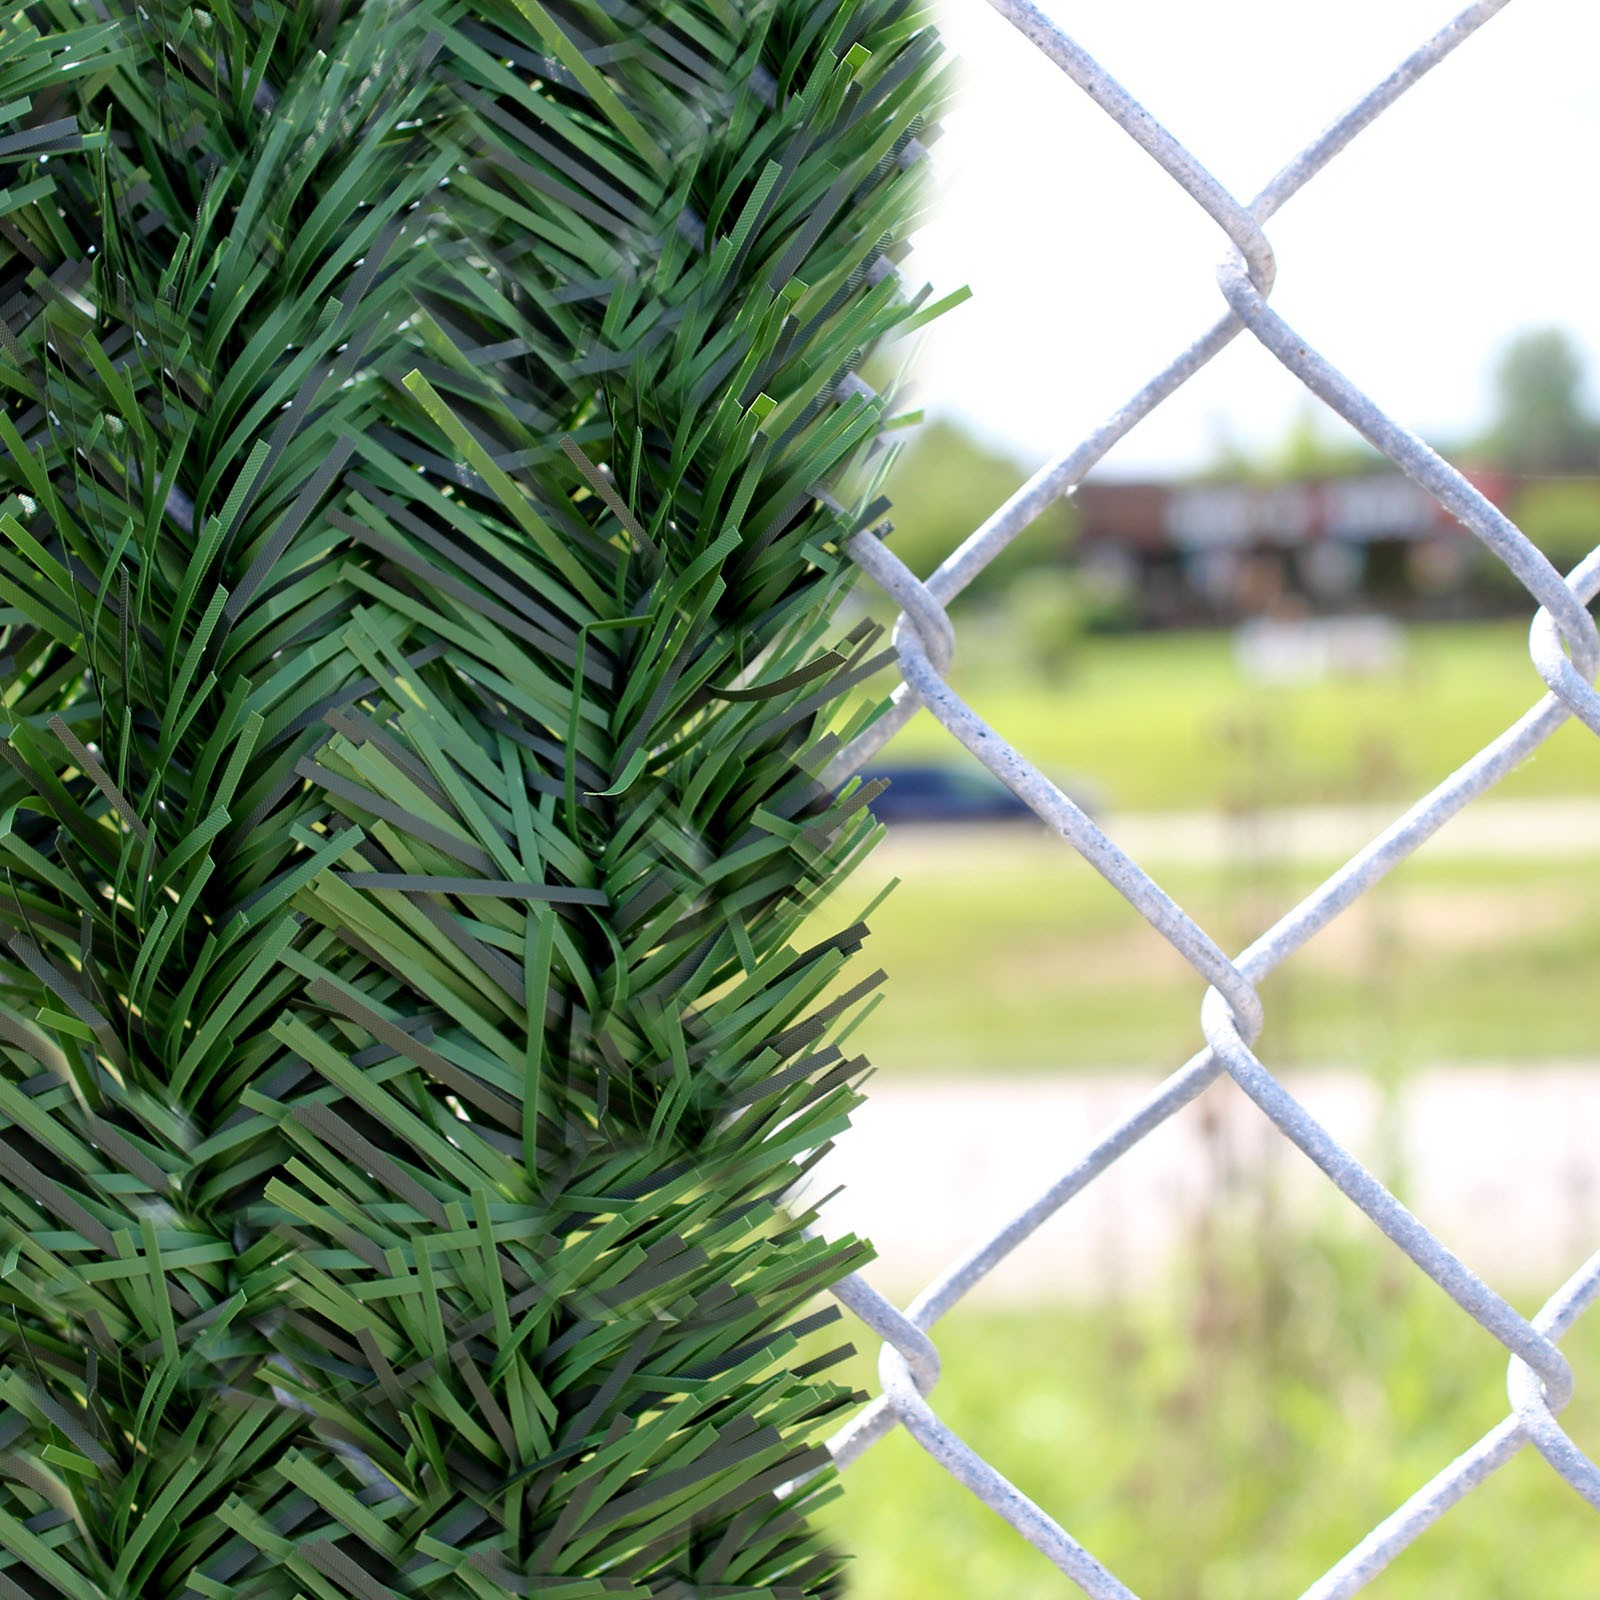 6 Chain Link Fence Forevergreen Hedge Slats